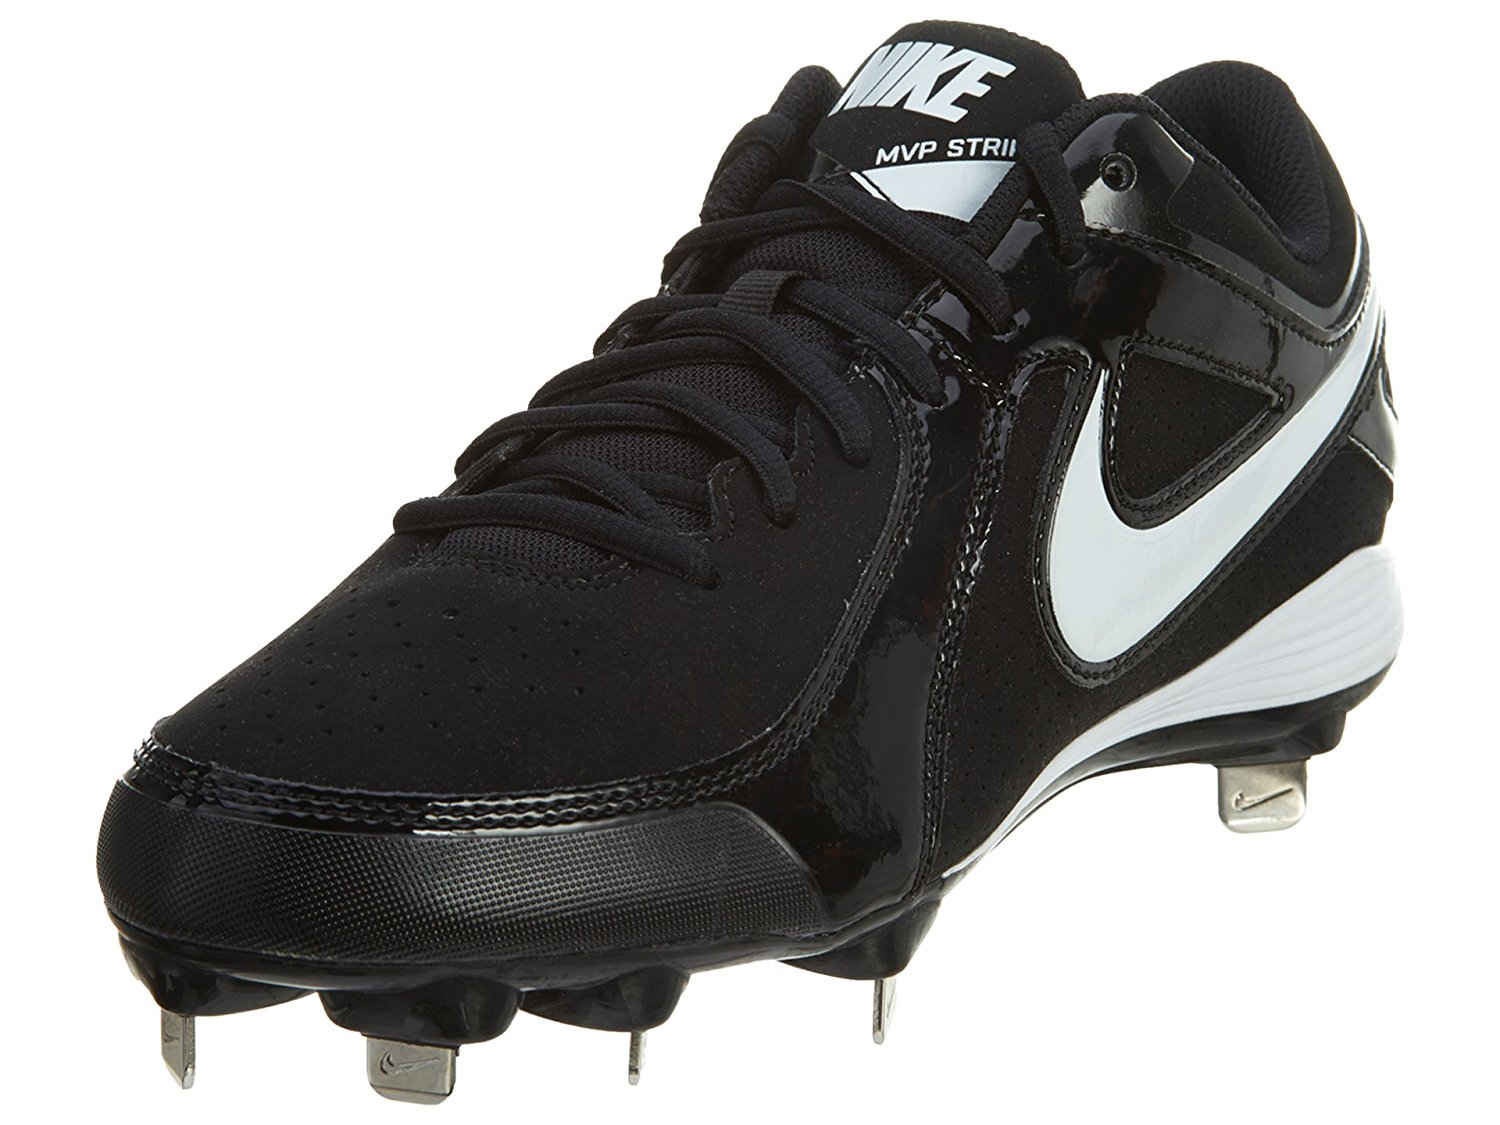 ec3b22254 Buy Nike Mens Swingman MVP 2 MD Metal Stud Black Baseball Cleats in ...